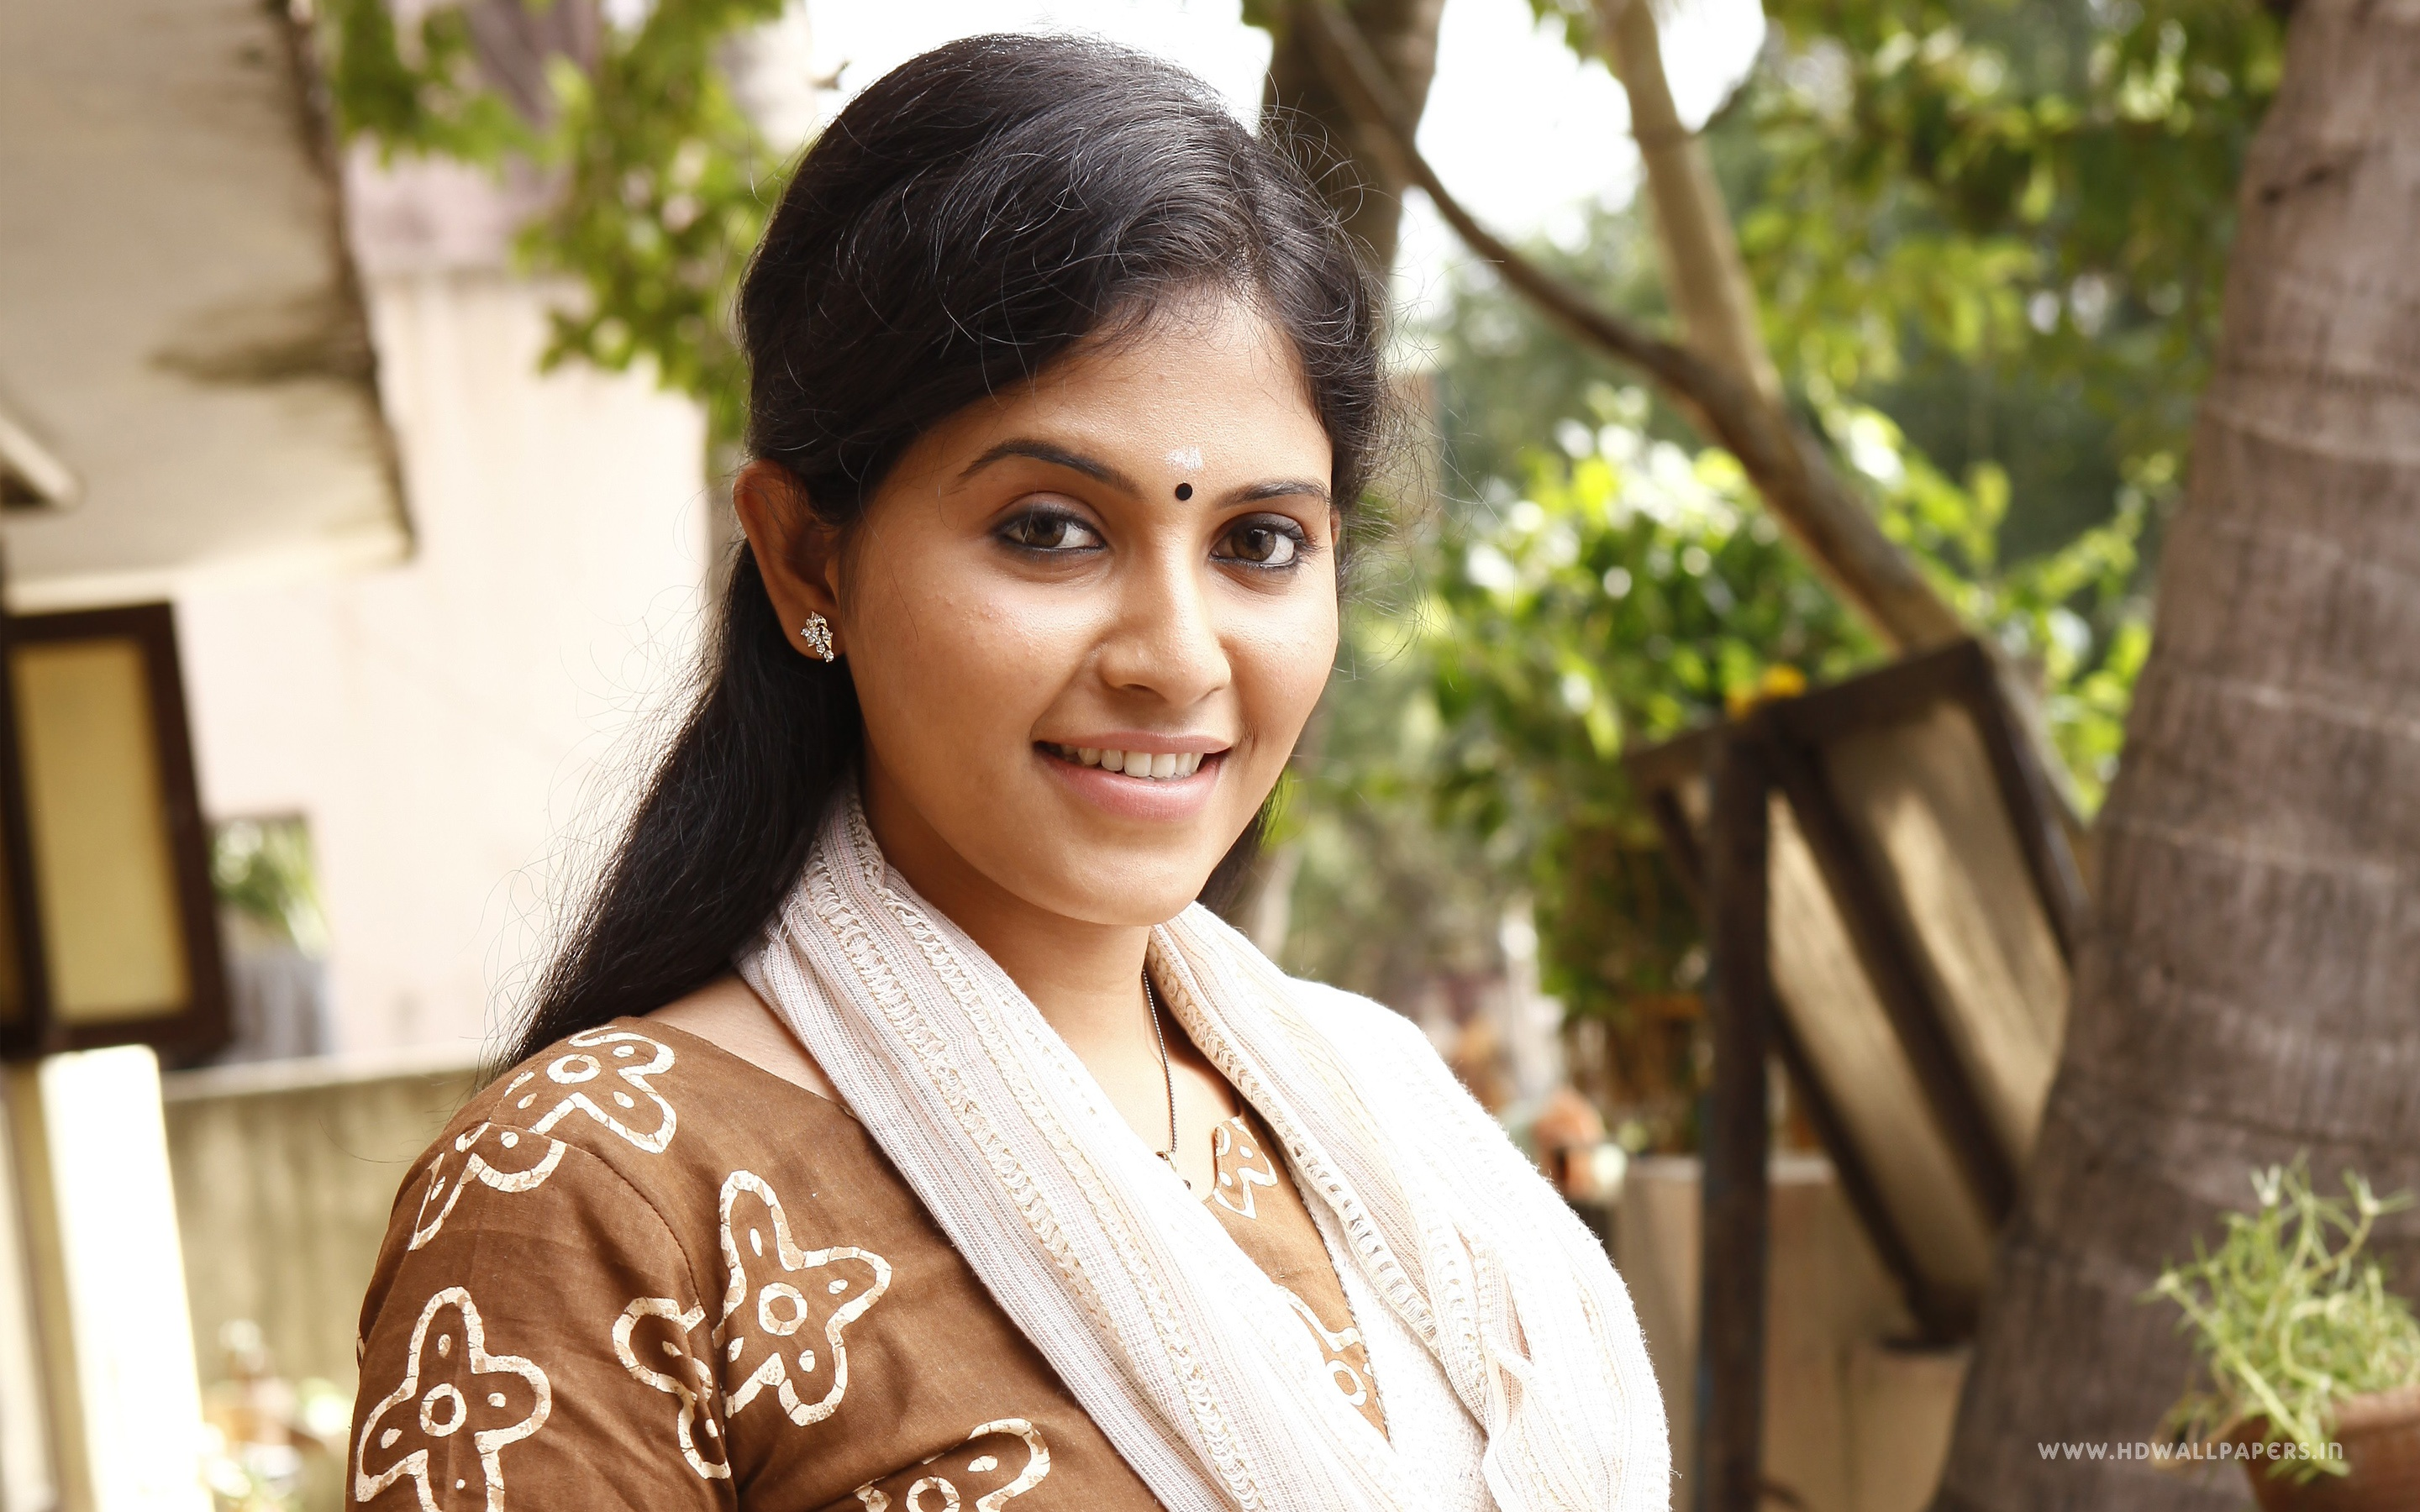 South Indian actress Anjali HD wallpaper for download